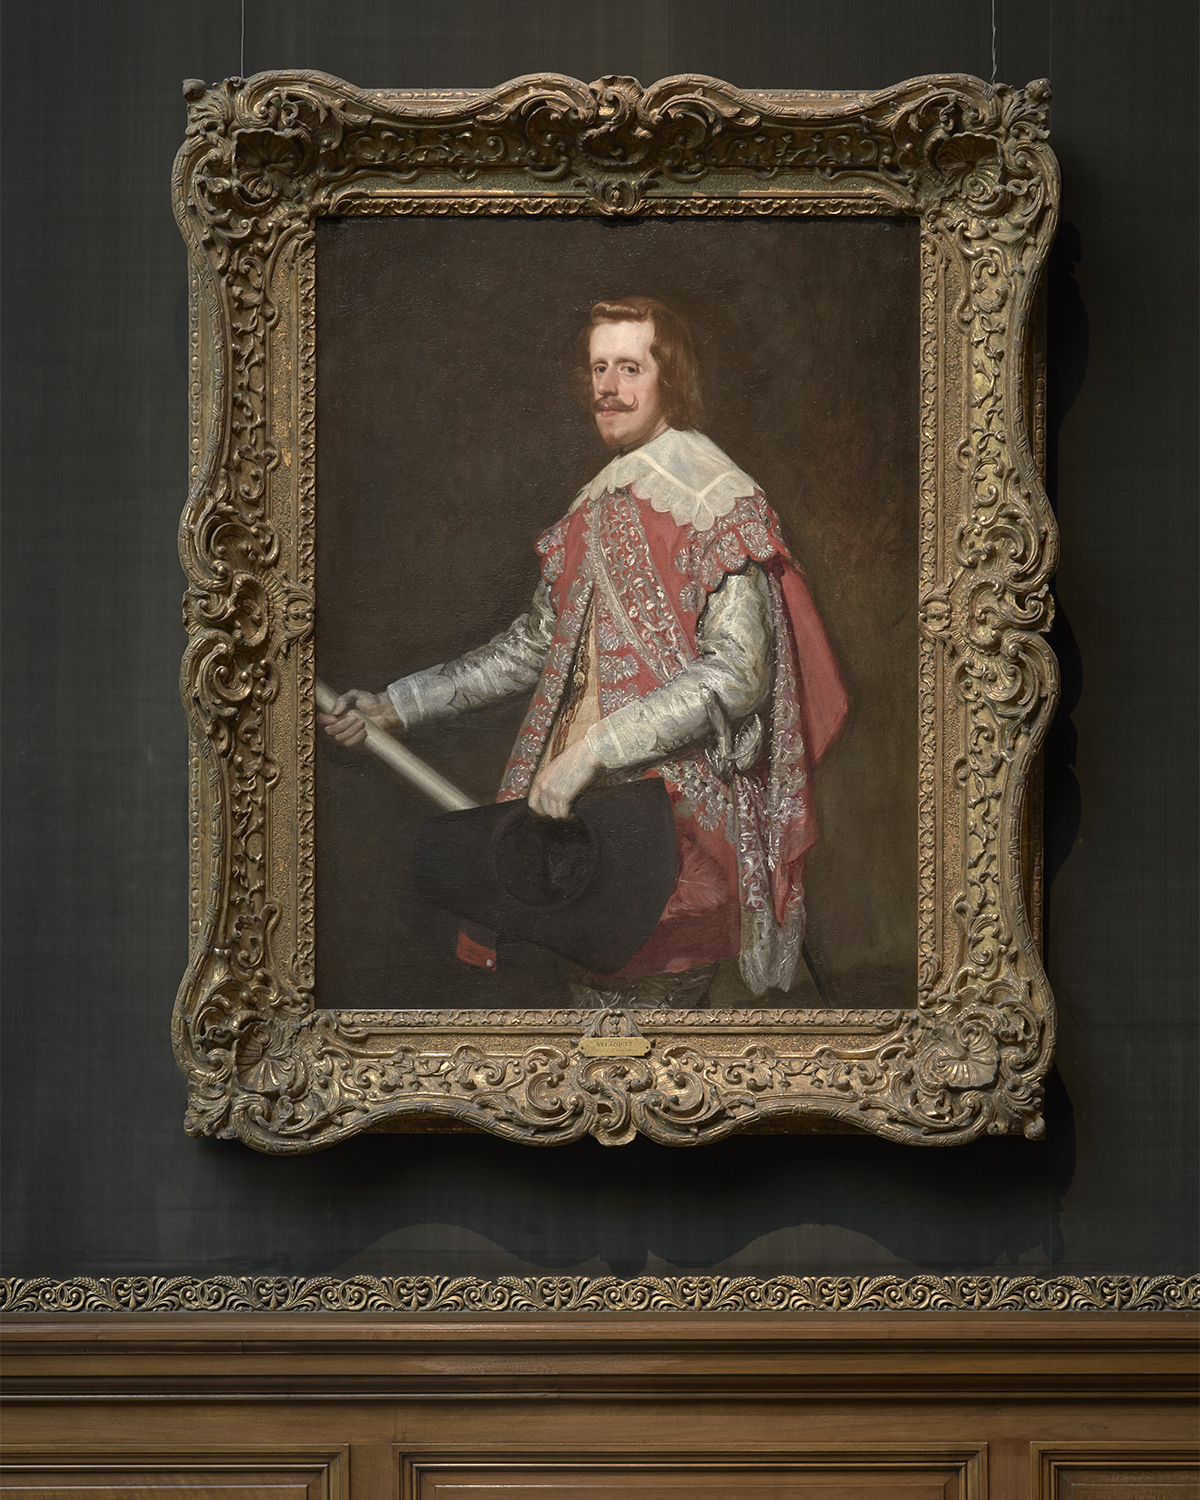 King Philip IV of Spain by Diego Velázquez